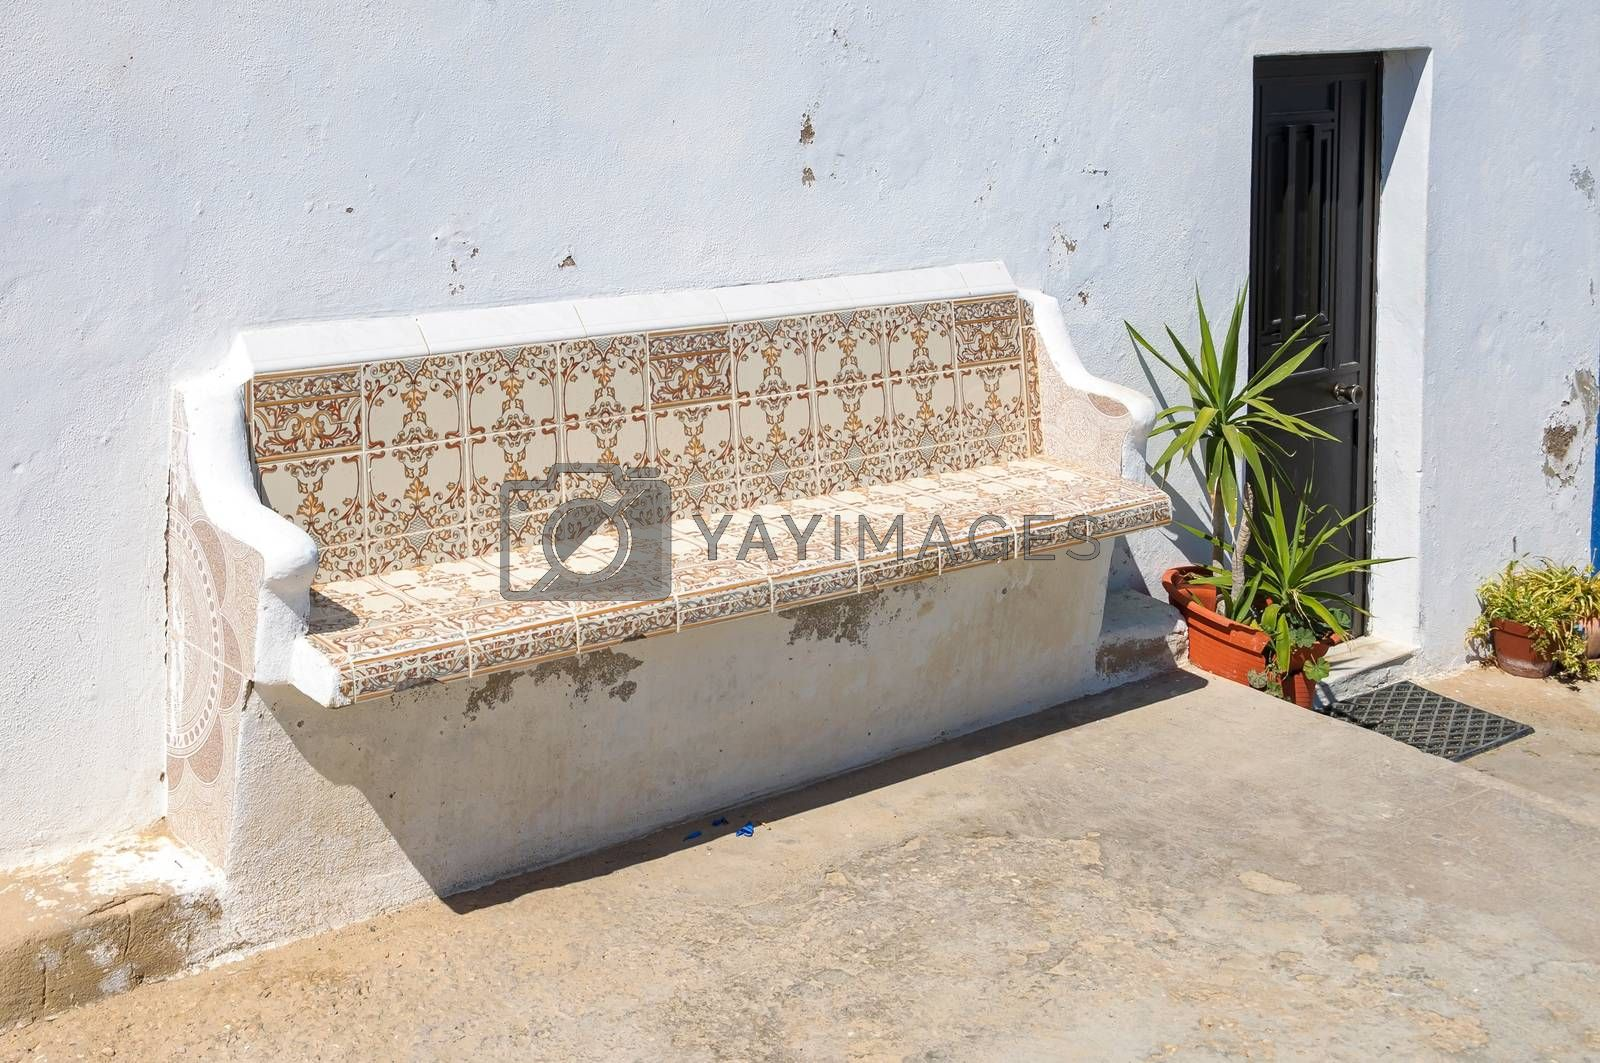 Bench decorated with traditional portuguese tiles called azulejos ath the house entrance